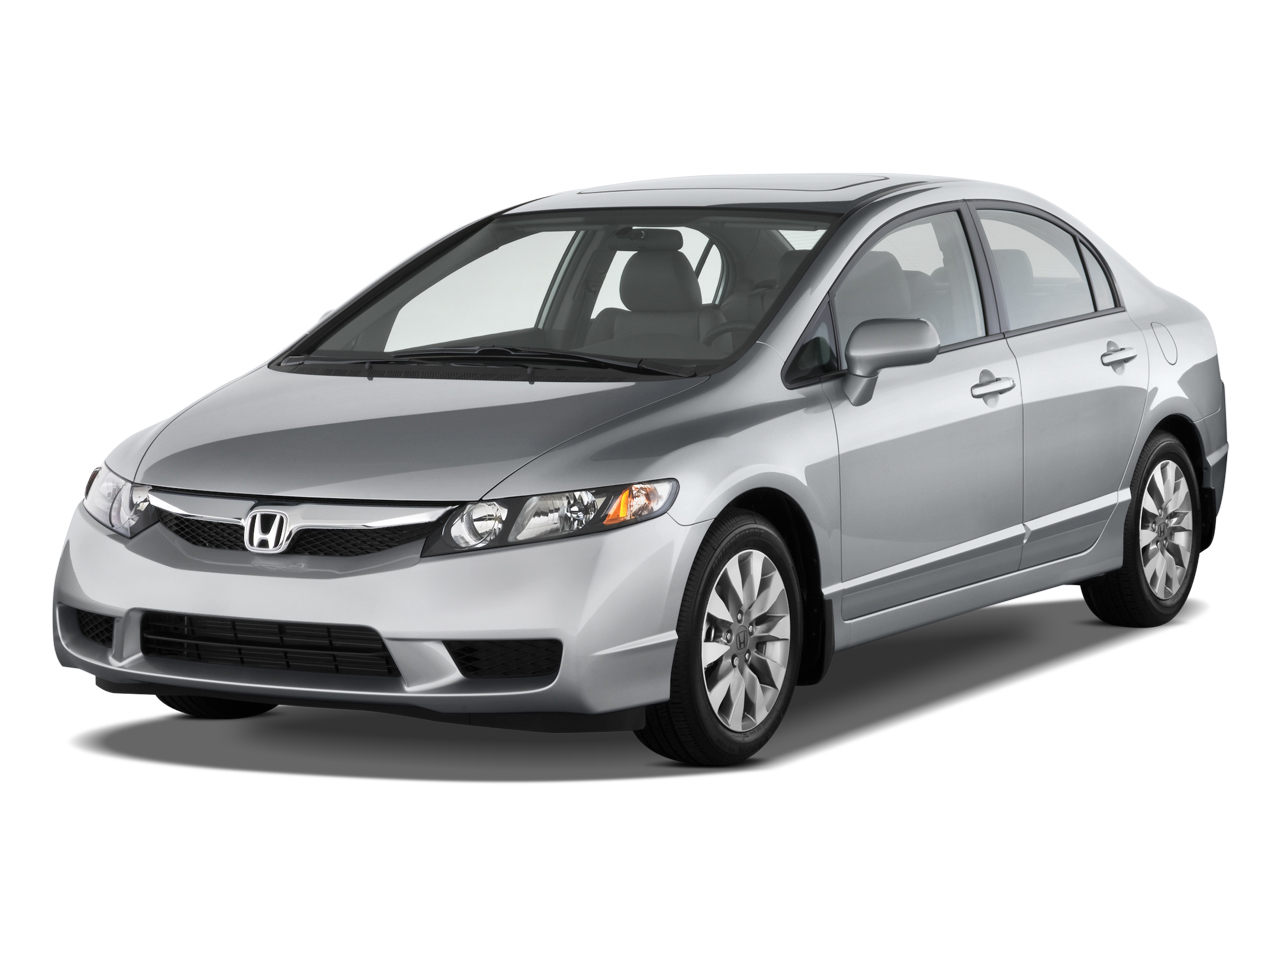 2011 honda civic gas mileage the car connection